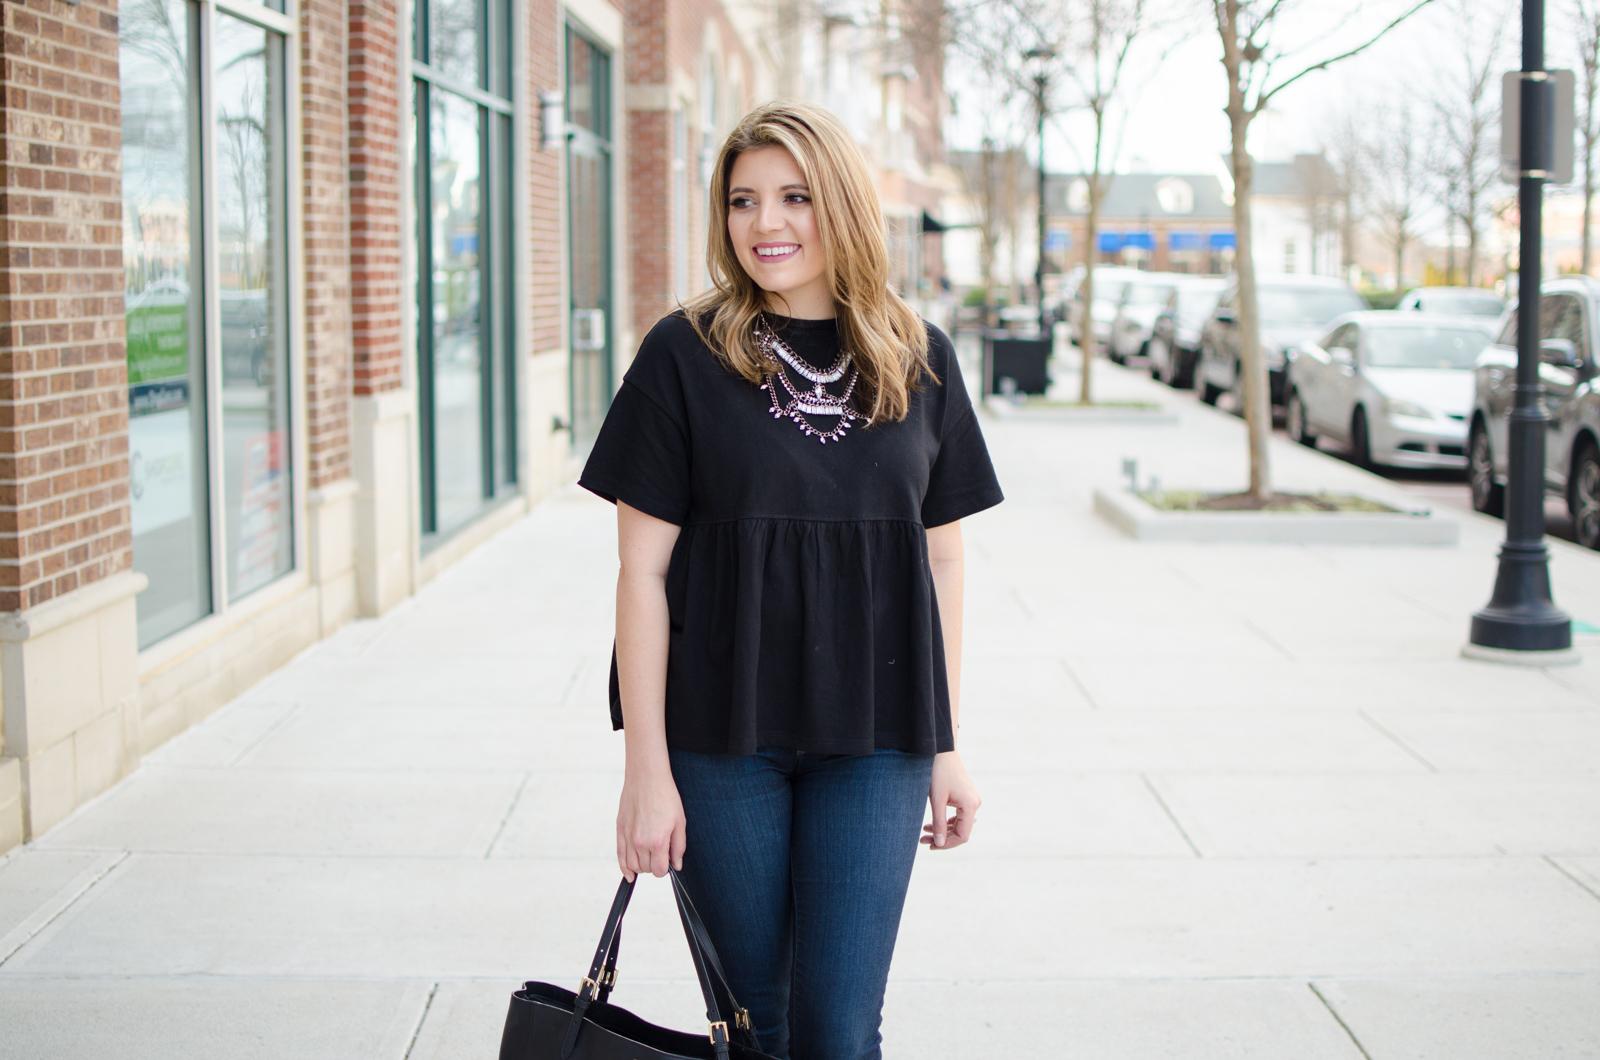 oversized peplum tee outfit - cute spring style | Click through for more cute weekend outfit ideas or to shop this look! www.bylaurenm.com